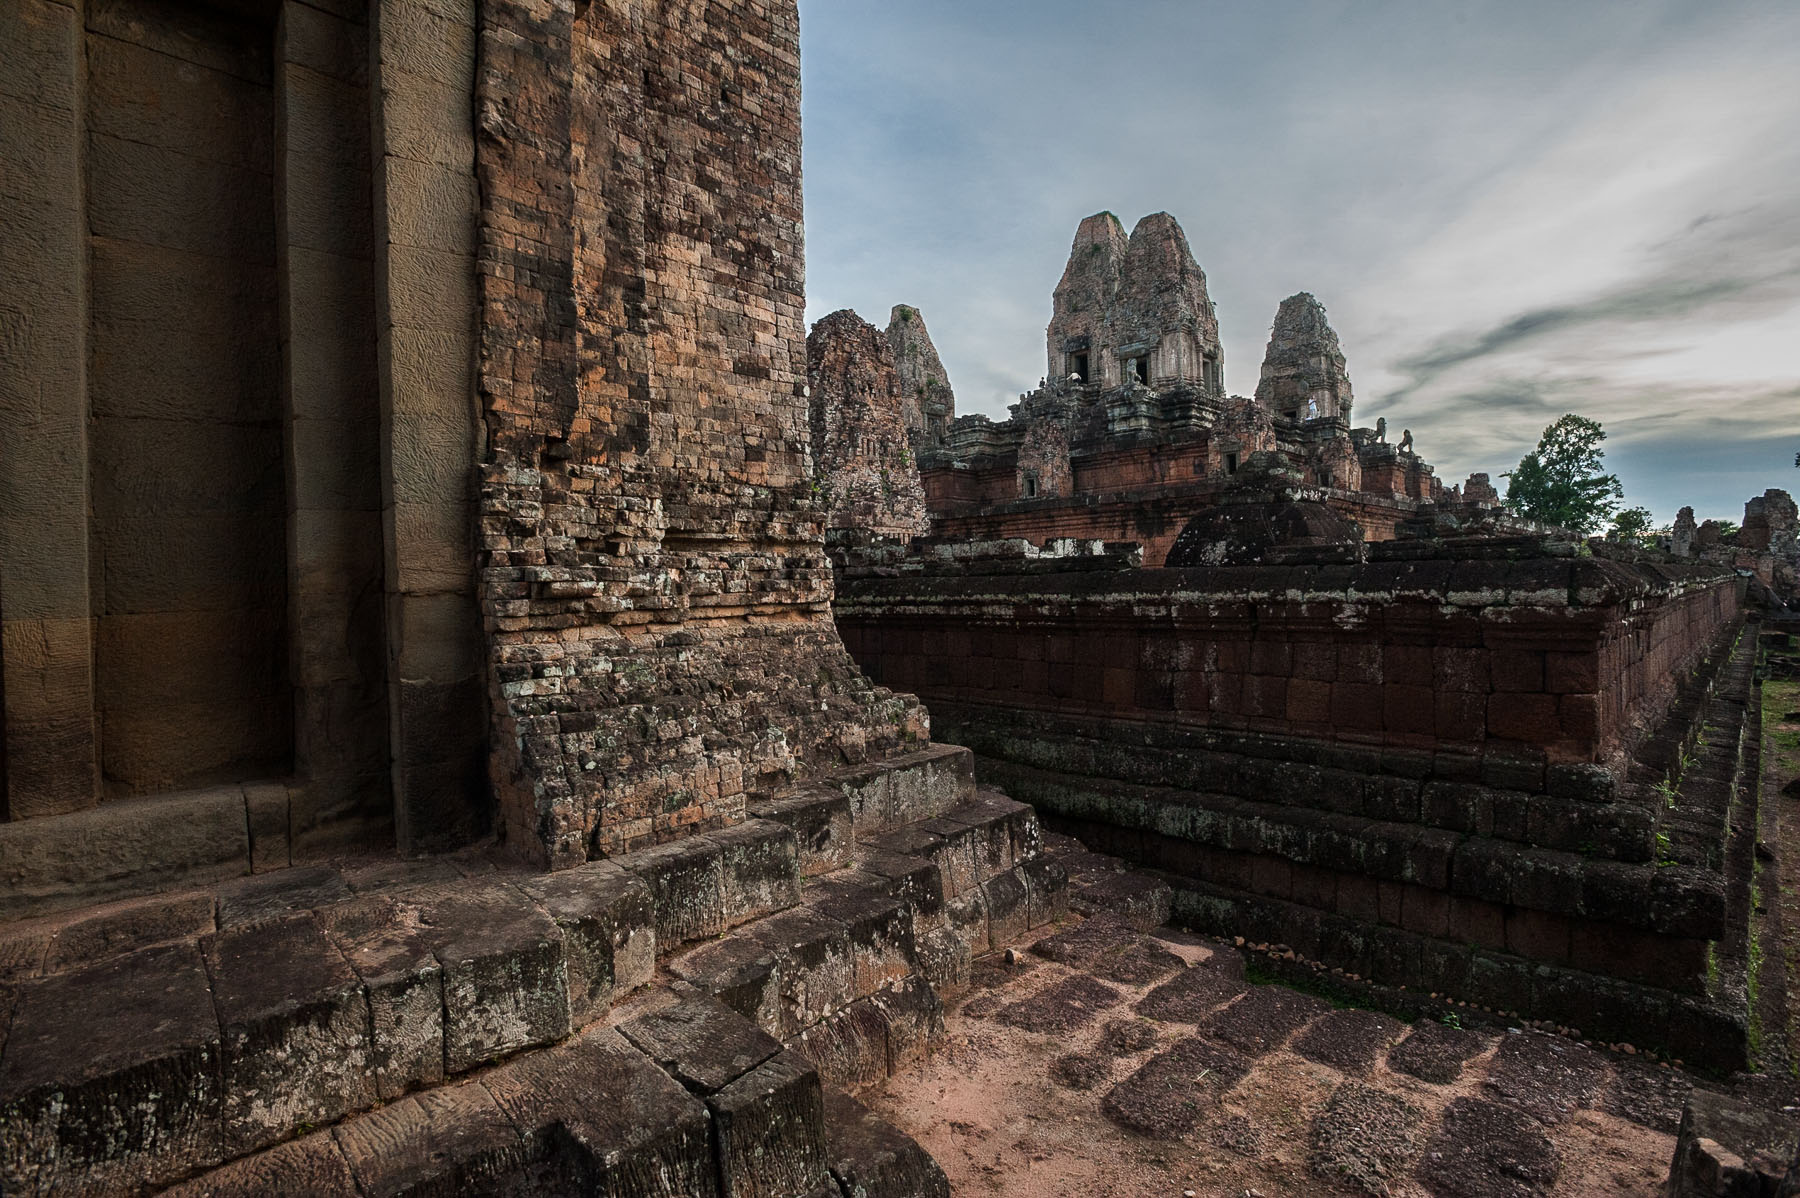 Ankor Wat Temple at sunset, Siem Reap, Cambodia.